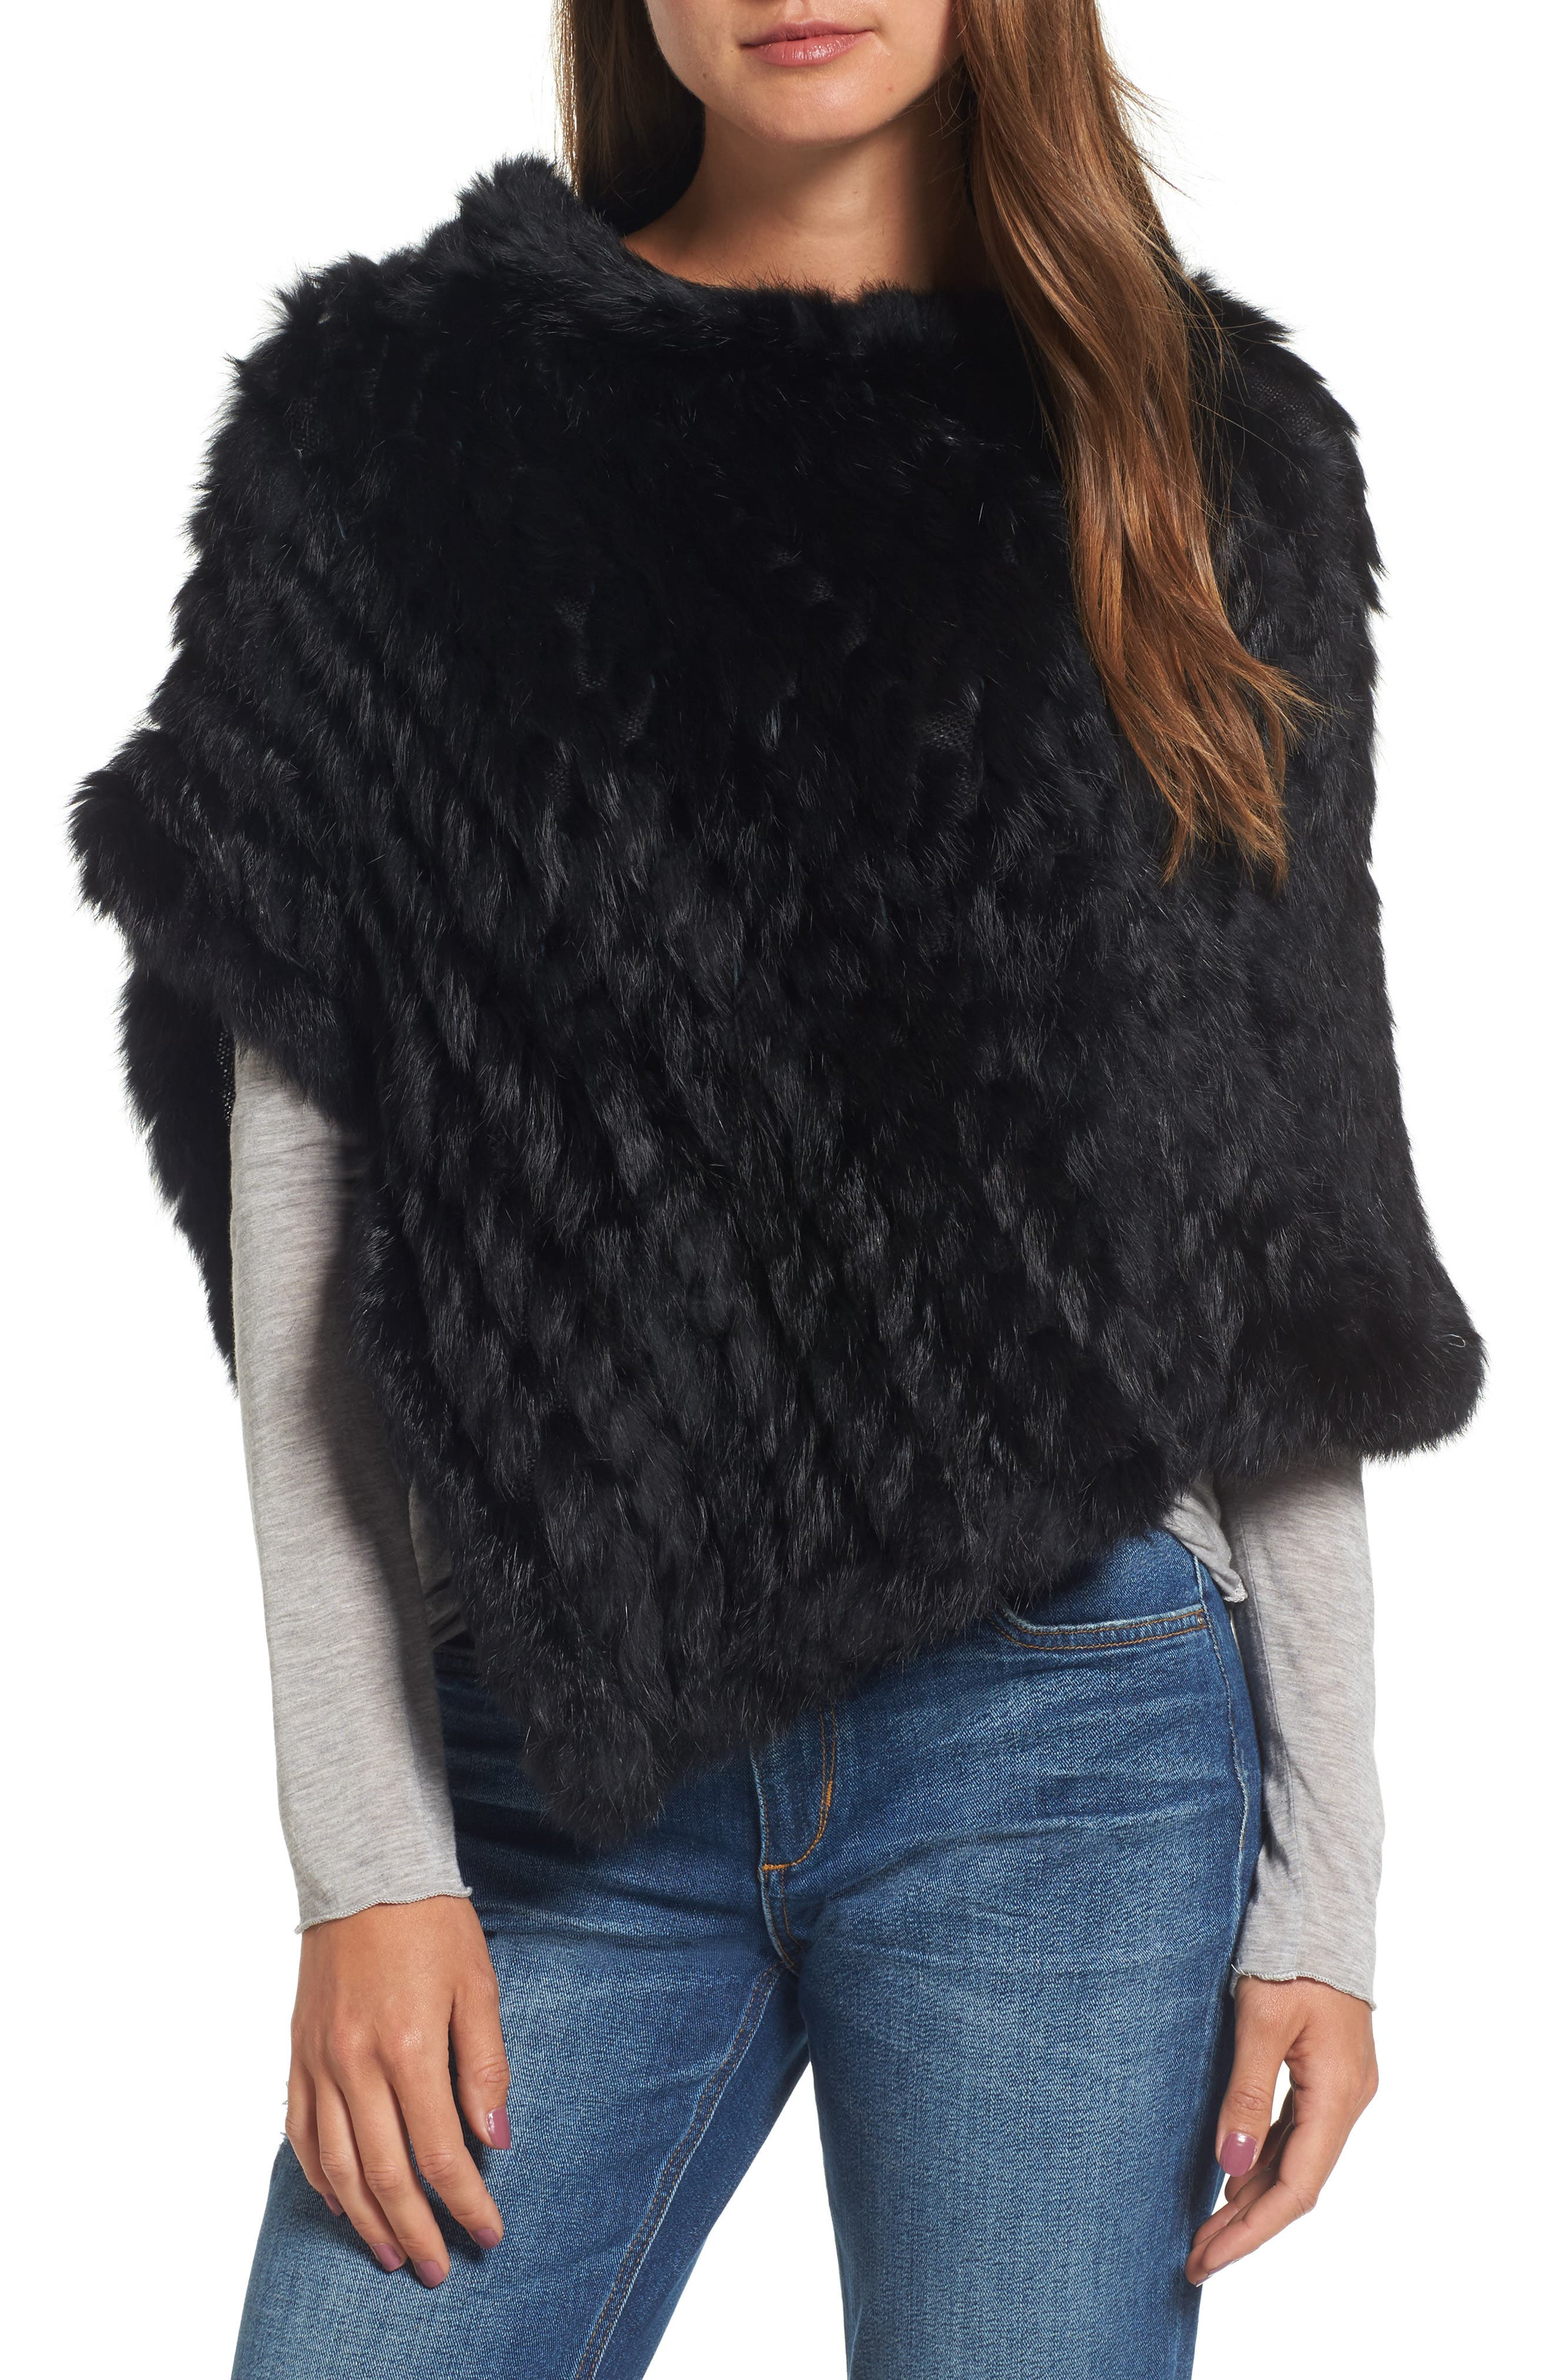 Alternate Image 1 Selected - La Fiorentina Genuine Rabbit Fur Poncho